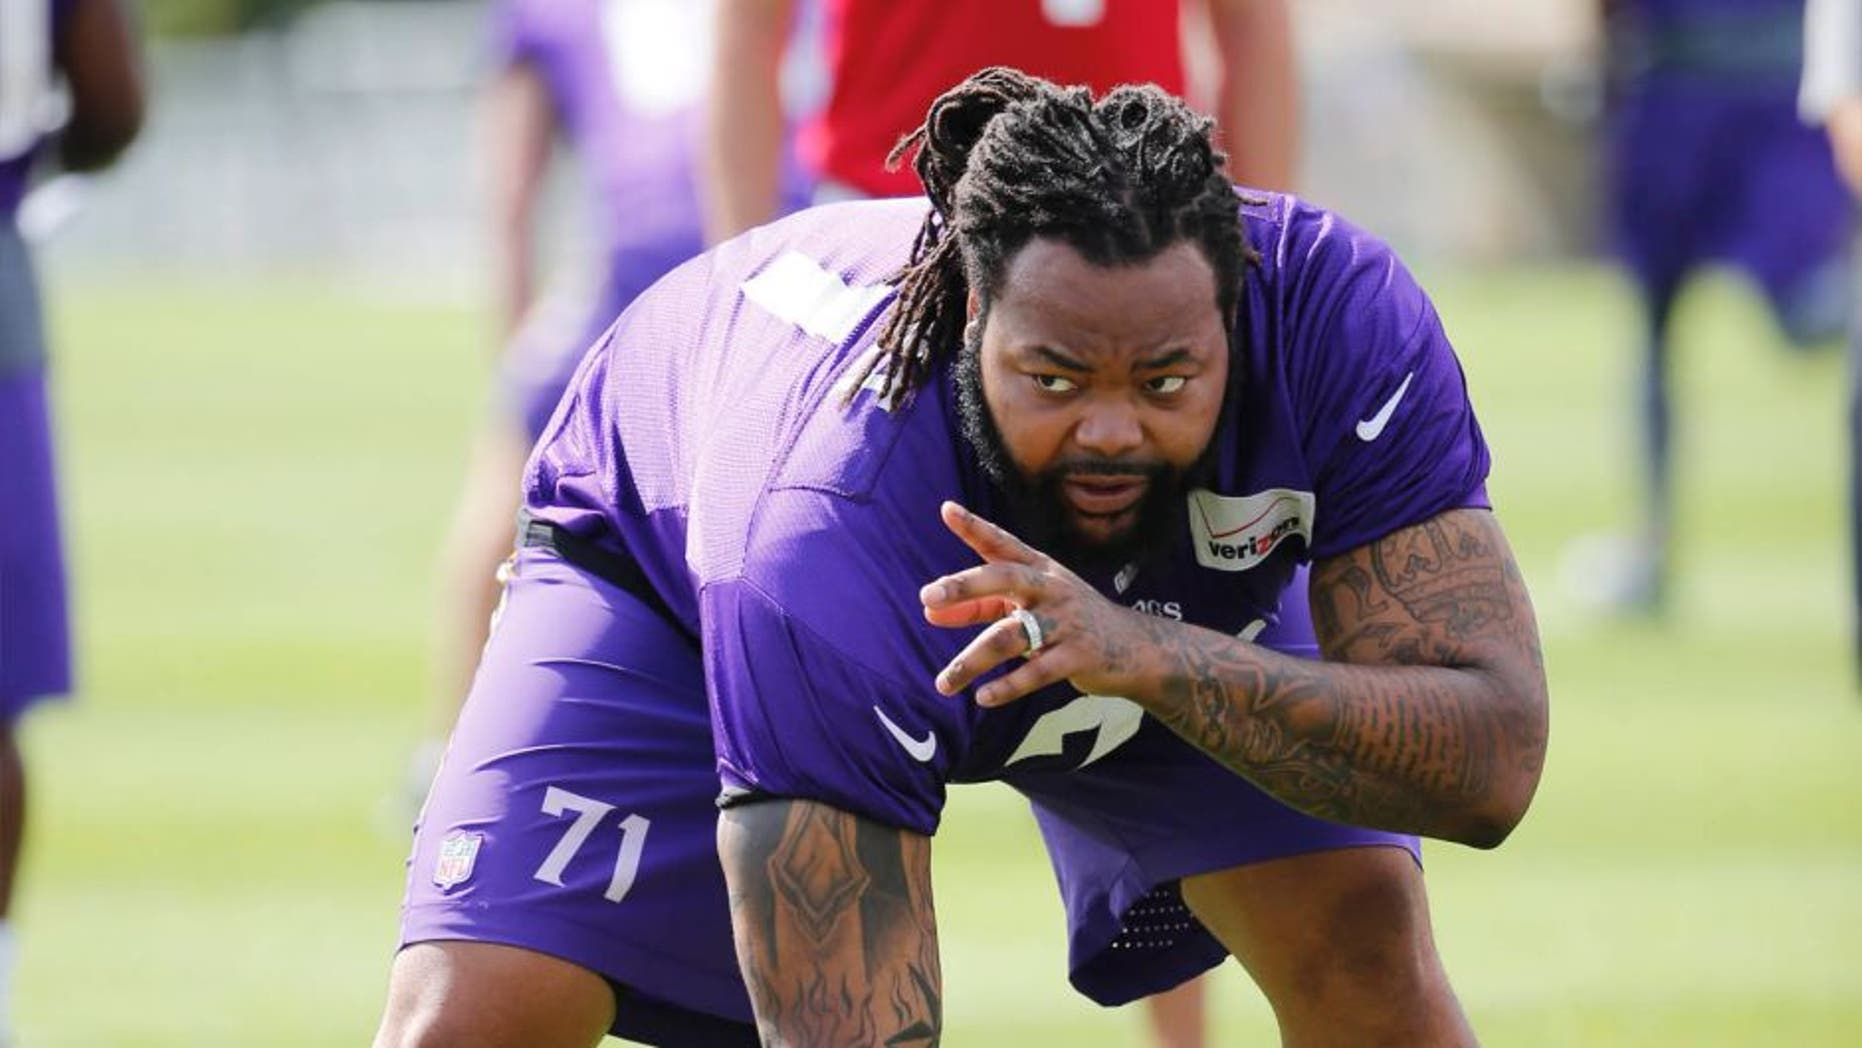 Sunday, July 26: Minnesota Vikings tackle Phil Loadholt identifies a defensive player during practice at training camp on the campus of Minnesota State University in Mankato.